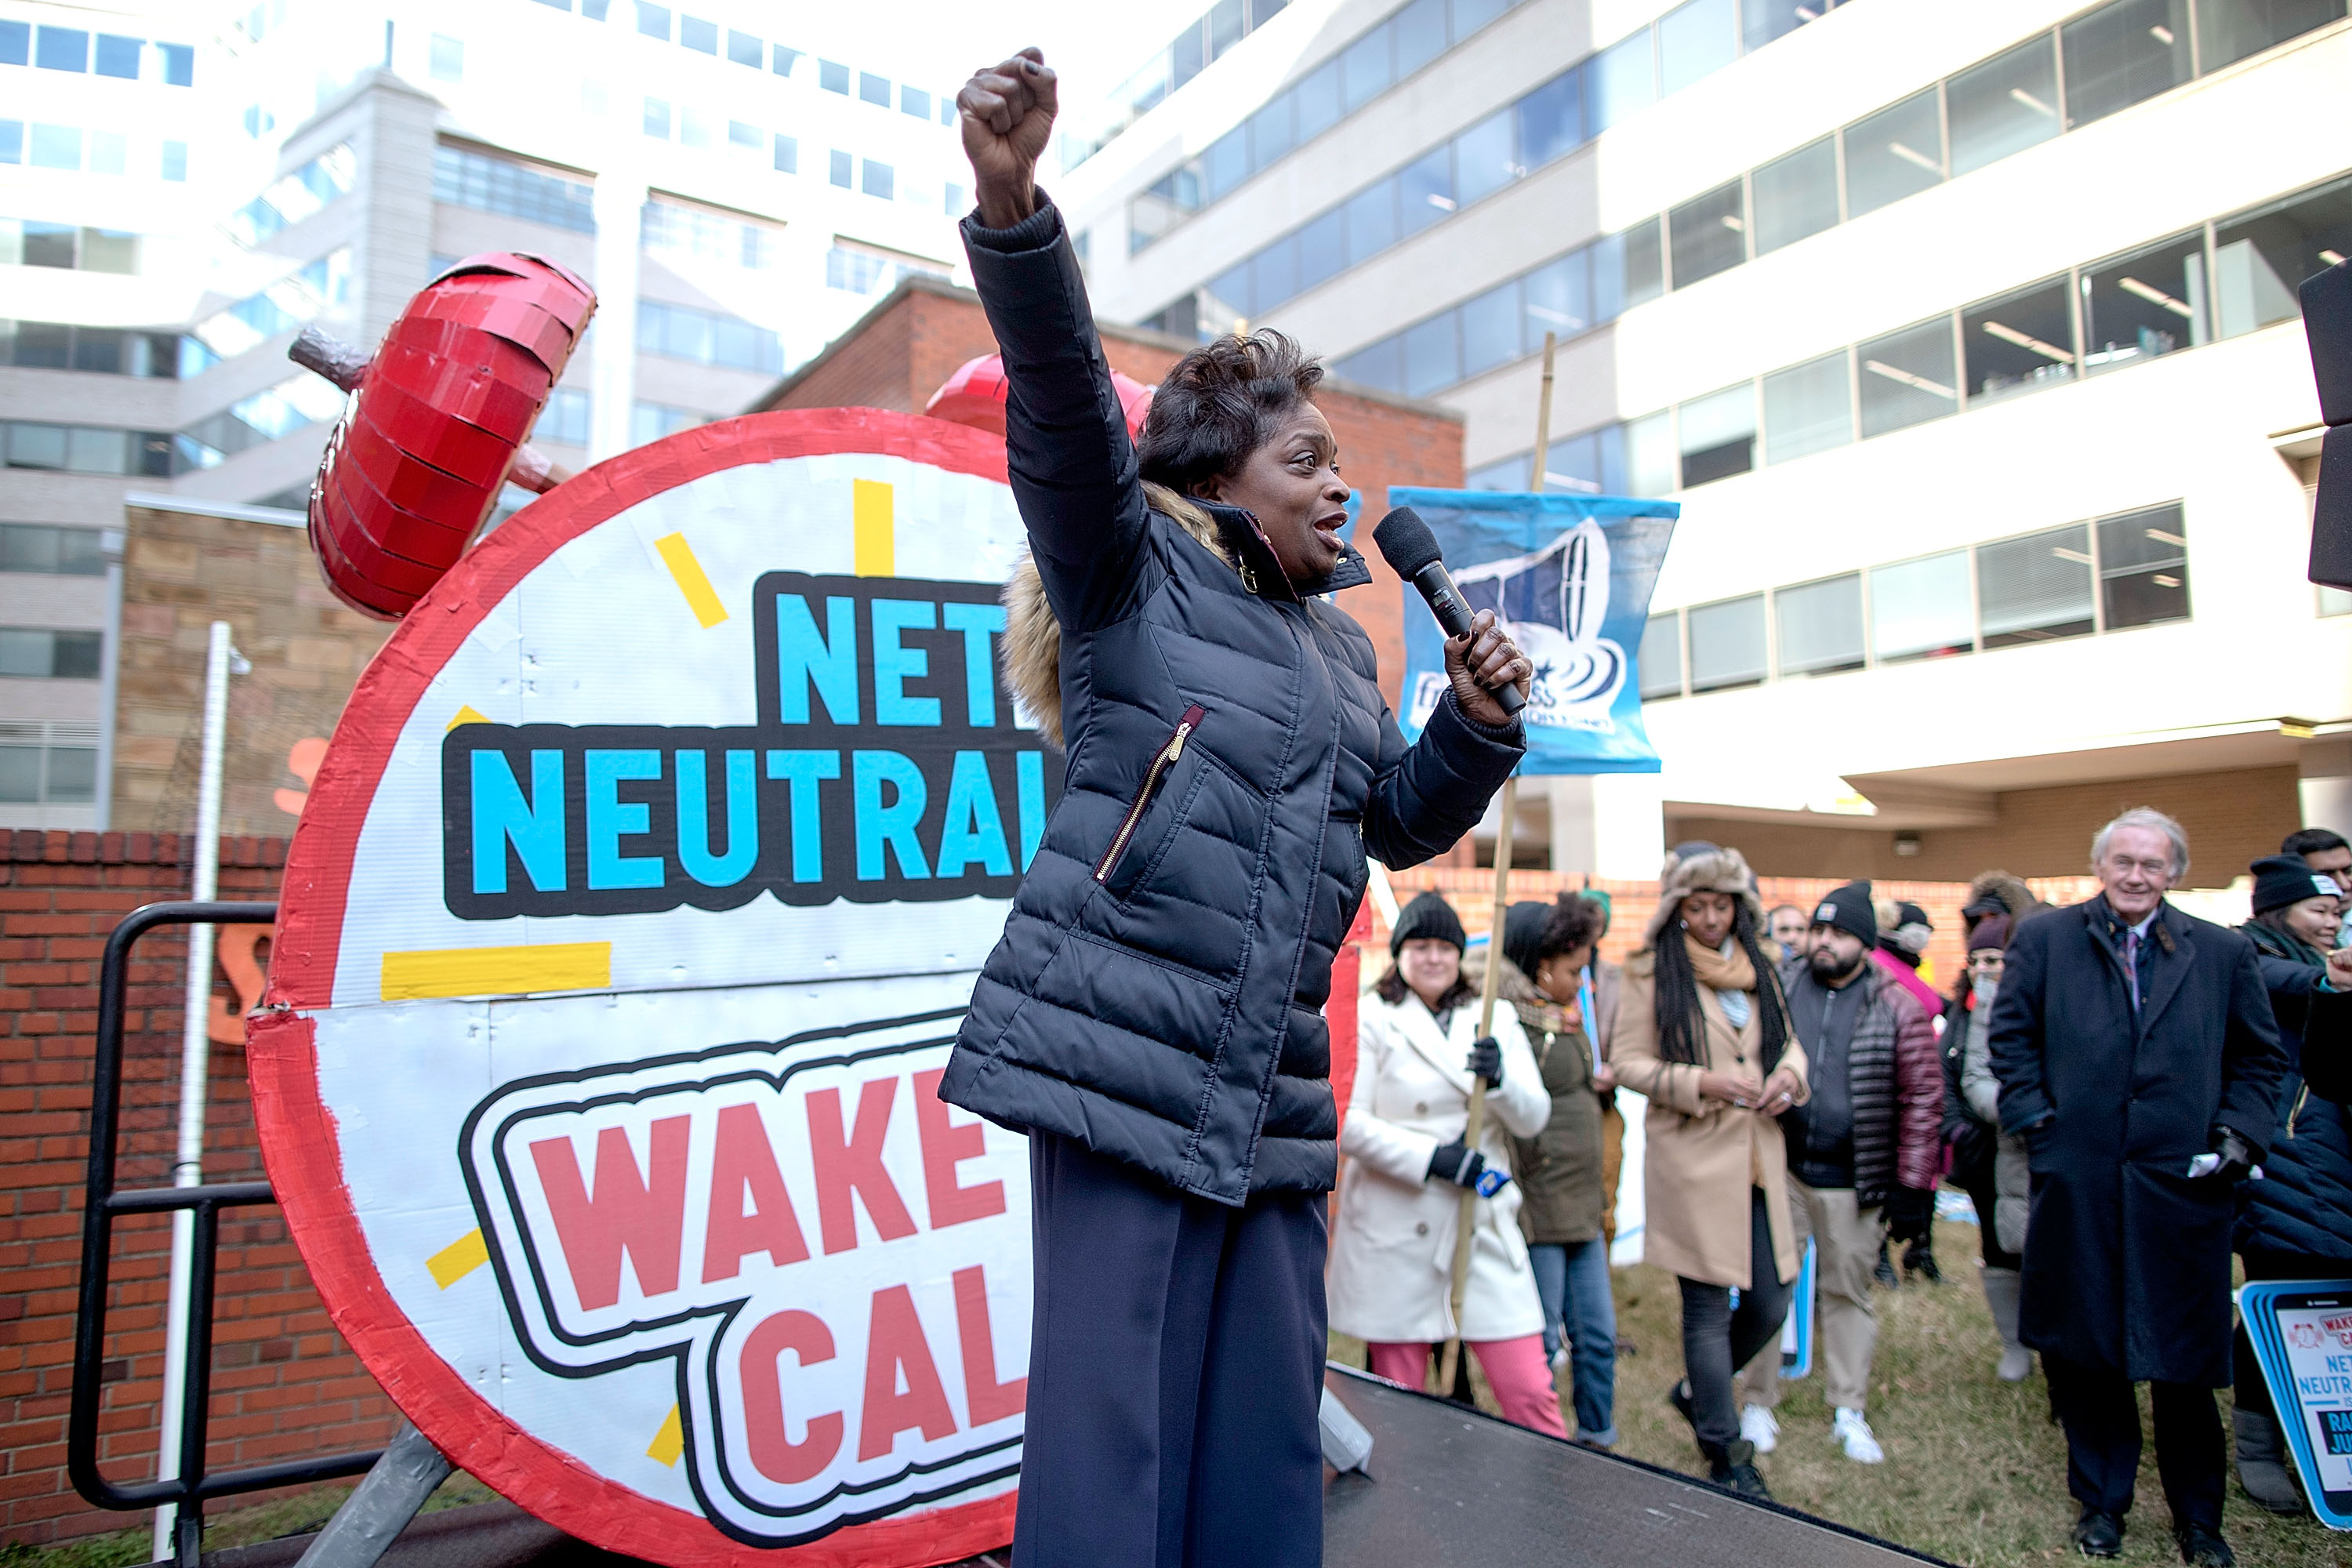 FCC Commissioner Mignon Clyburn addresses protesters outside the Federal Communication Commission building to rally against the end of net neutrality rules on December 14, 2017 in Washington, DC.